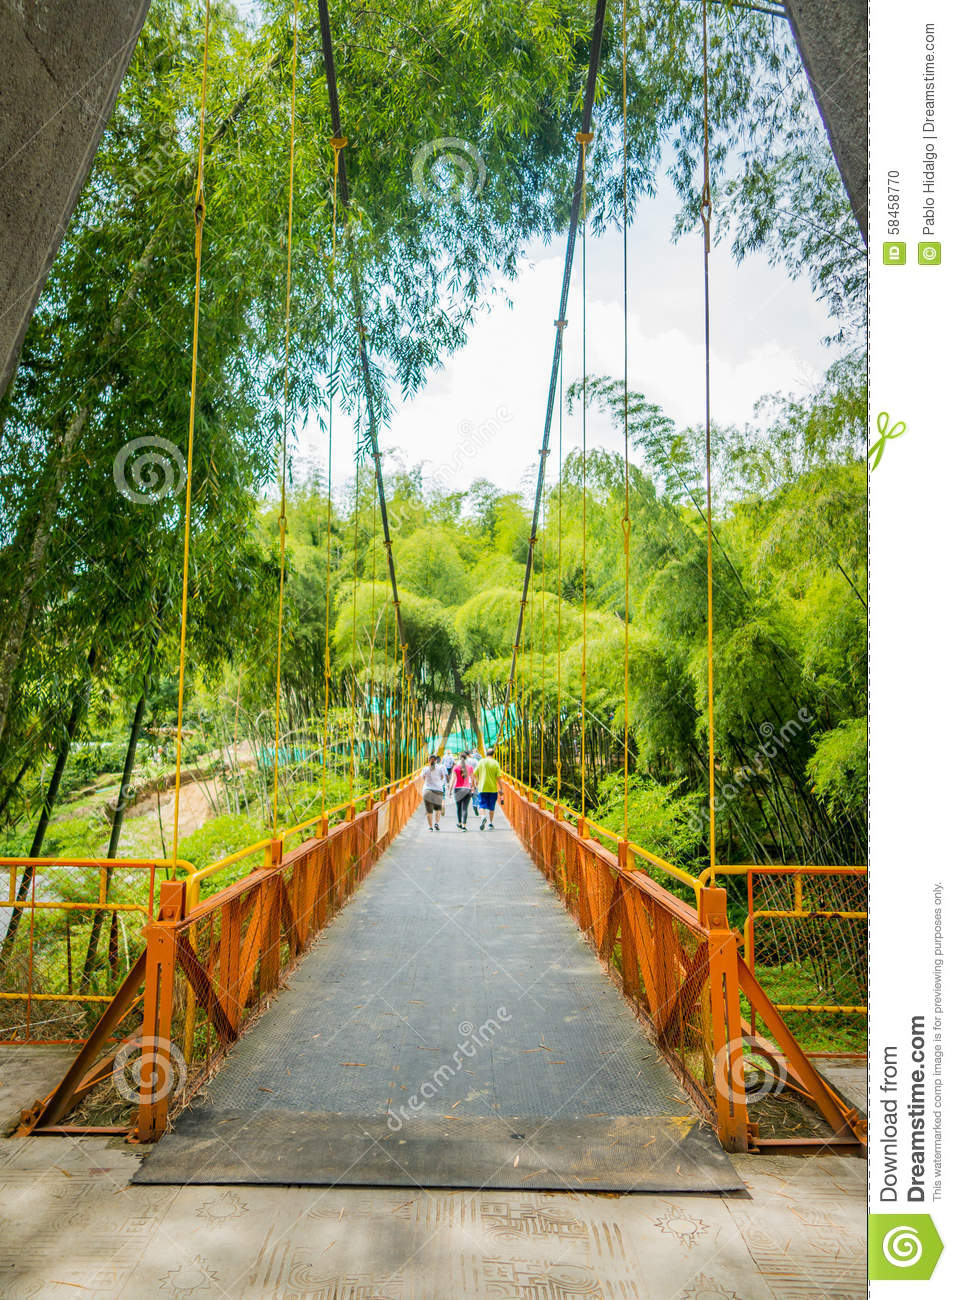 NATIONAL COFFEE PARK, COLOMBIA, Yellow pedestrian